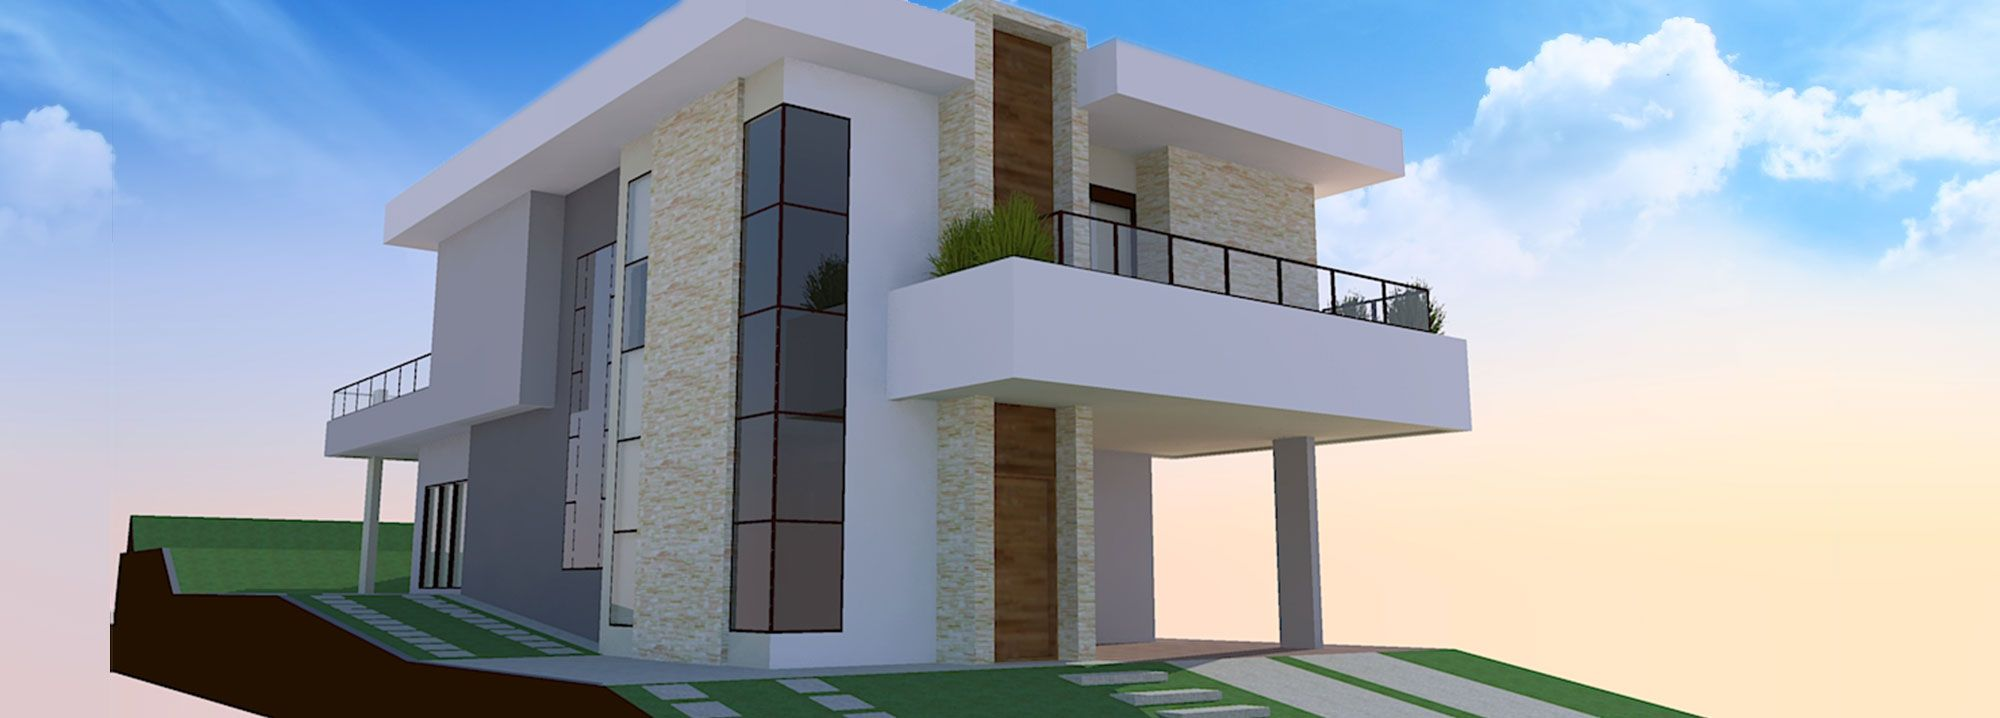 Projeto Residencial - 316,60 m²